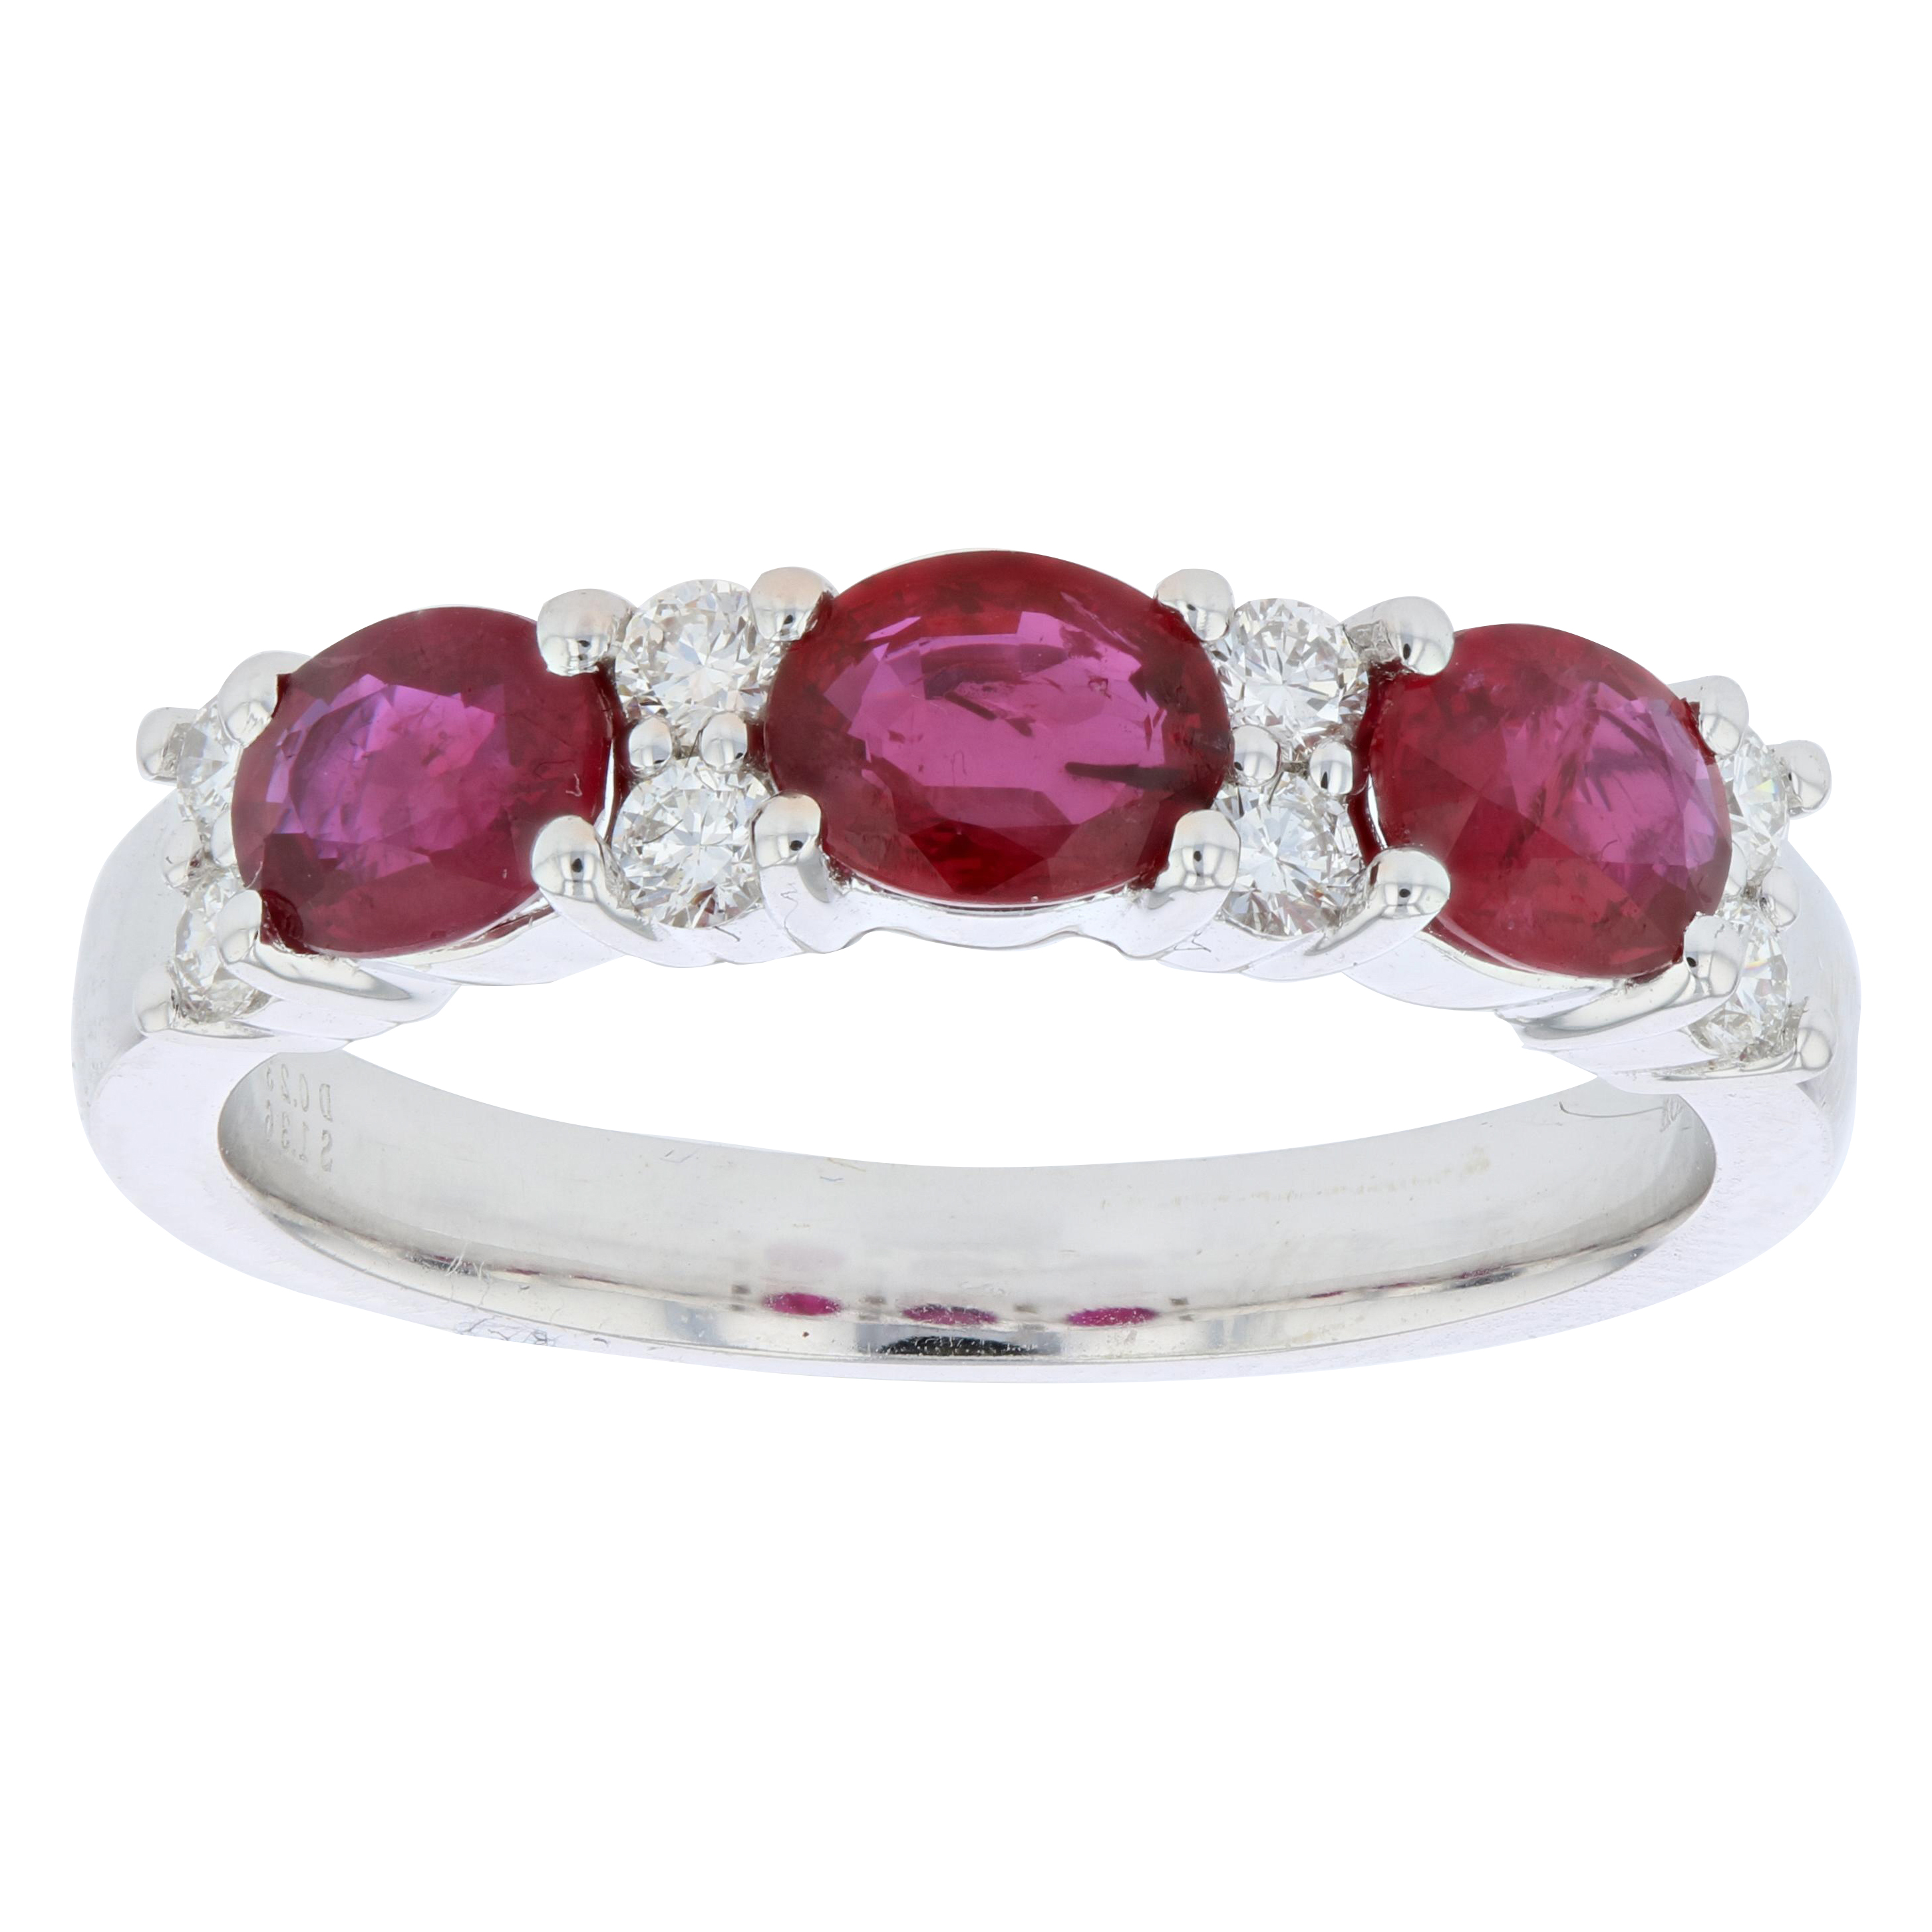 View 1.59ctw Diamond and Ruby Band in 18k White Gold